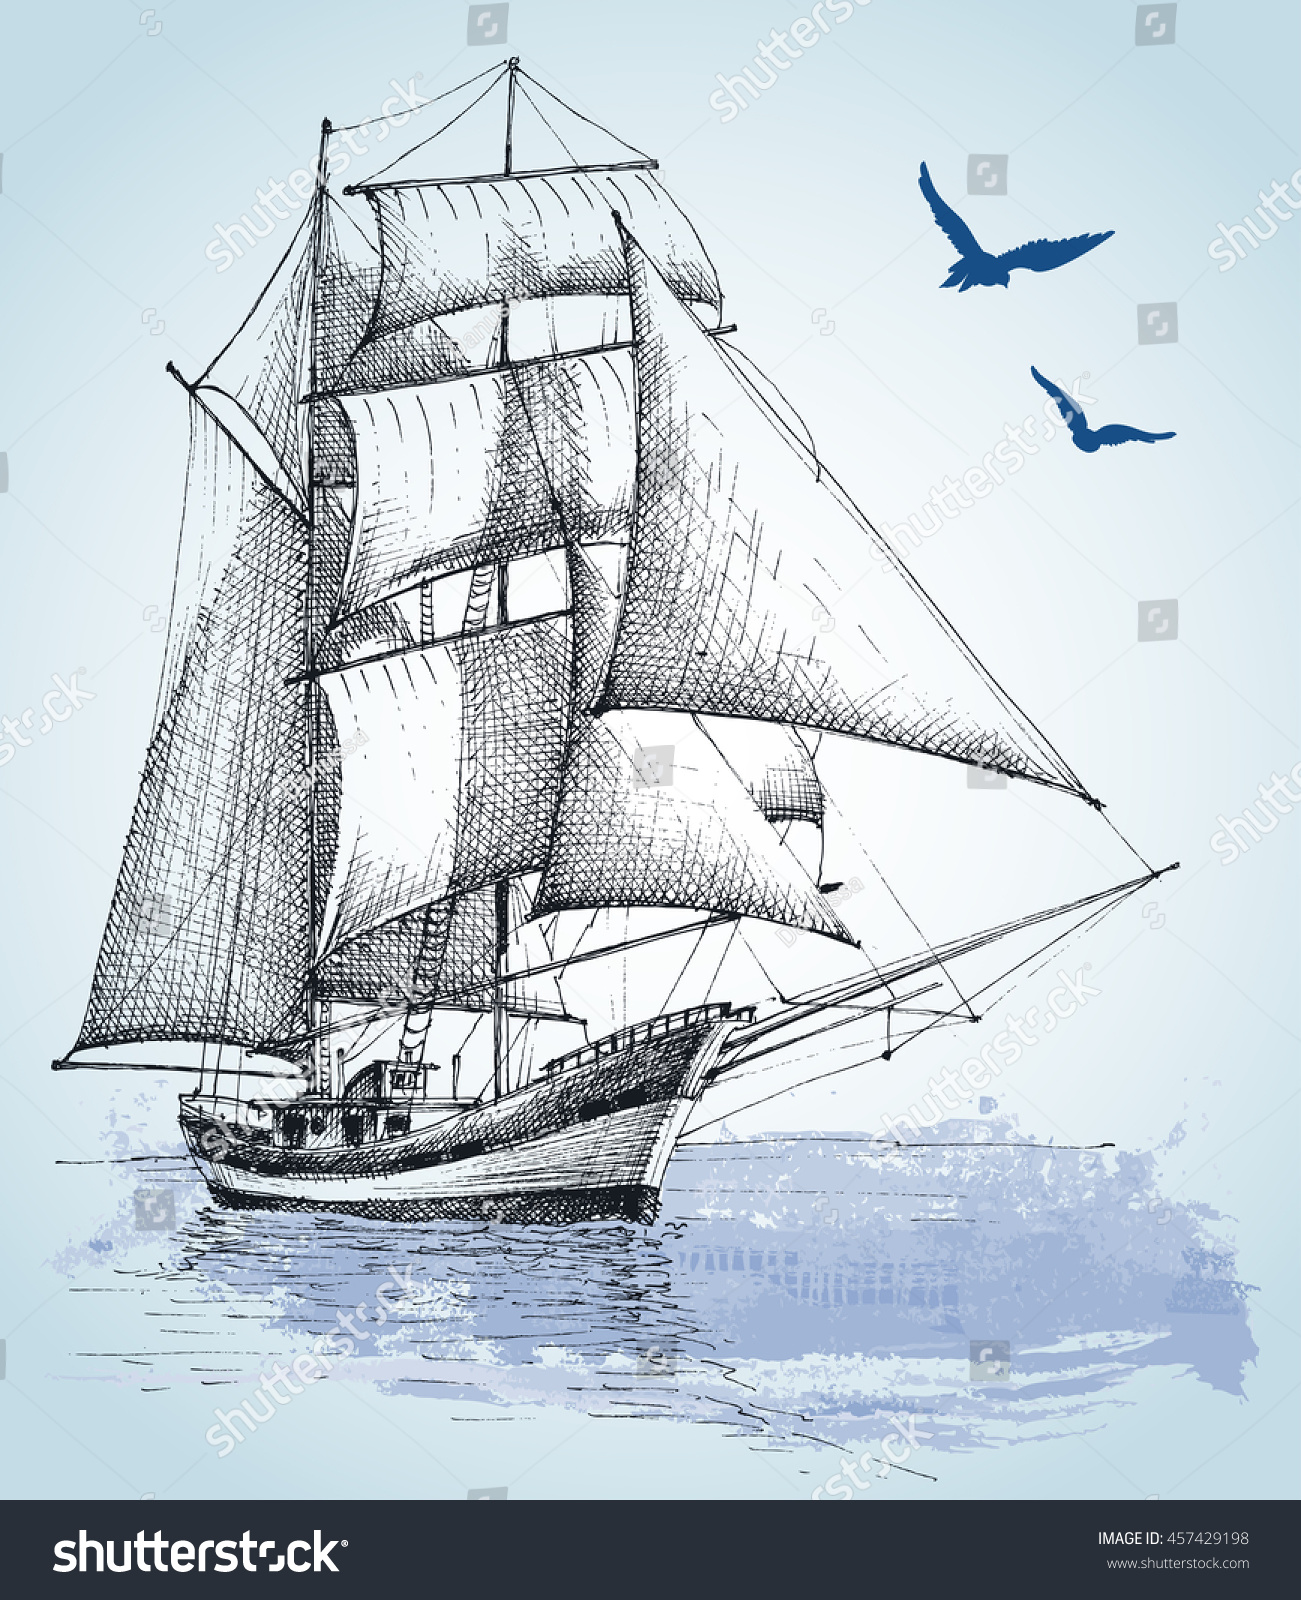 Uncategorized Drawing Of Boat boat drawing sailboat vector sketch stock 457429198 sketch